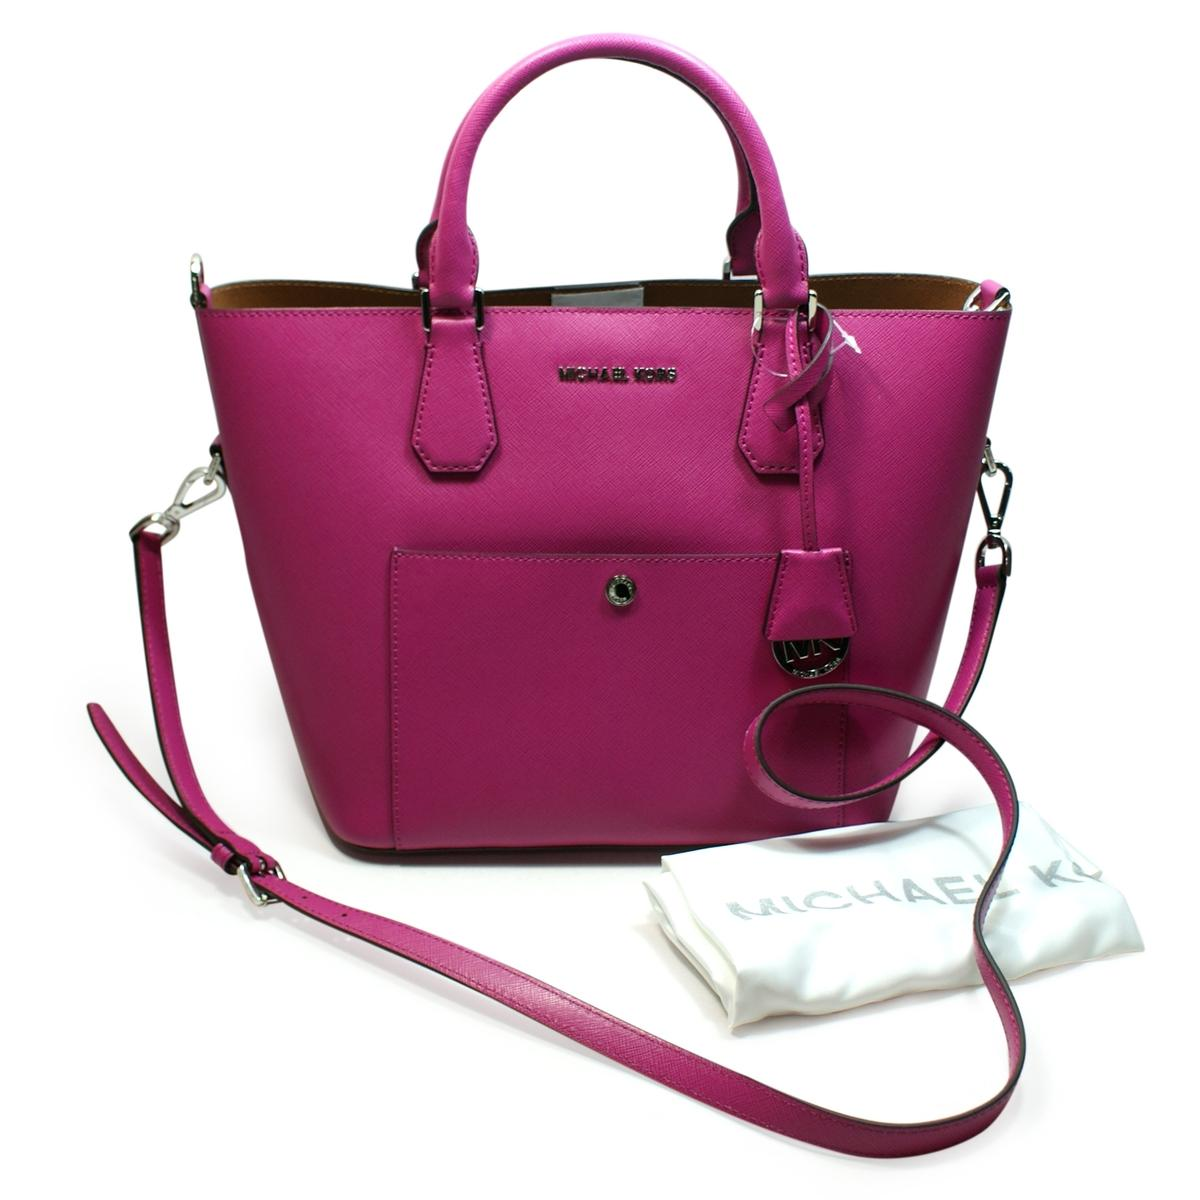 75beb9df19a0 Home · Michael Kors · Greenwich Leather Grab Bag  Crossbody Bag Fuschia. CLICK  THUMBNAIL TO ZOOM. Found ...